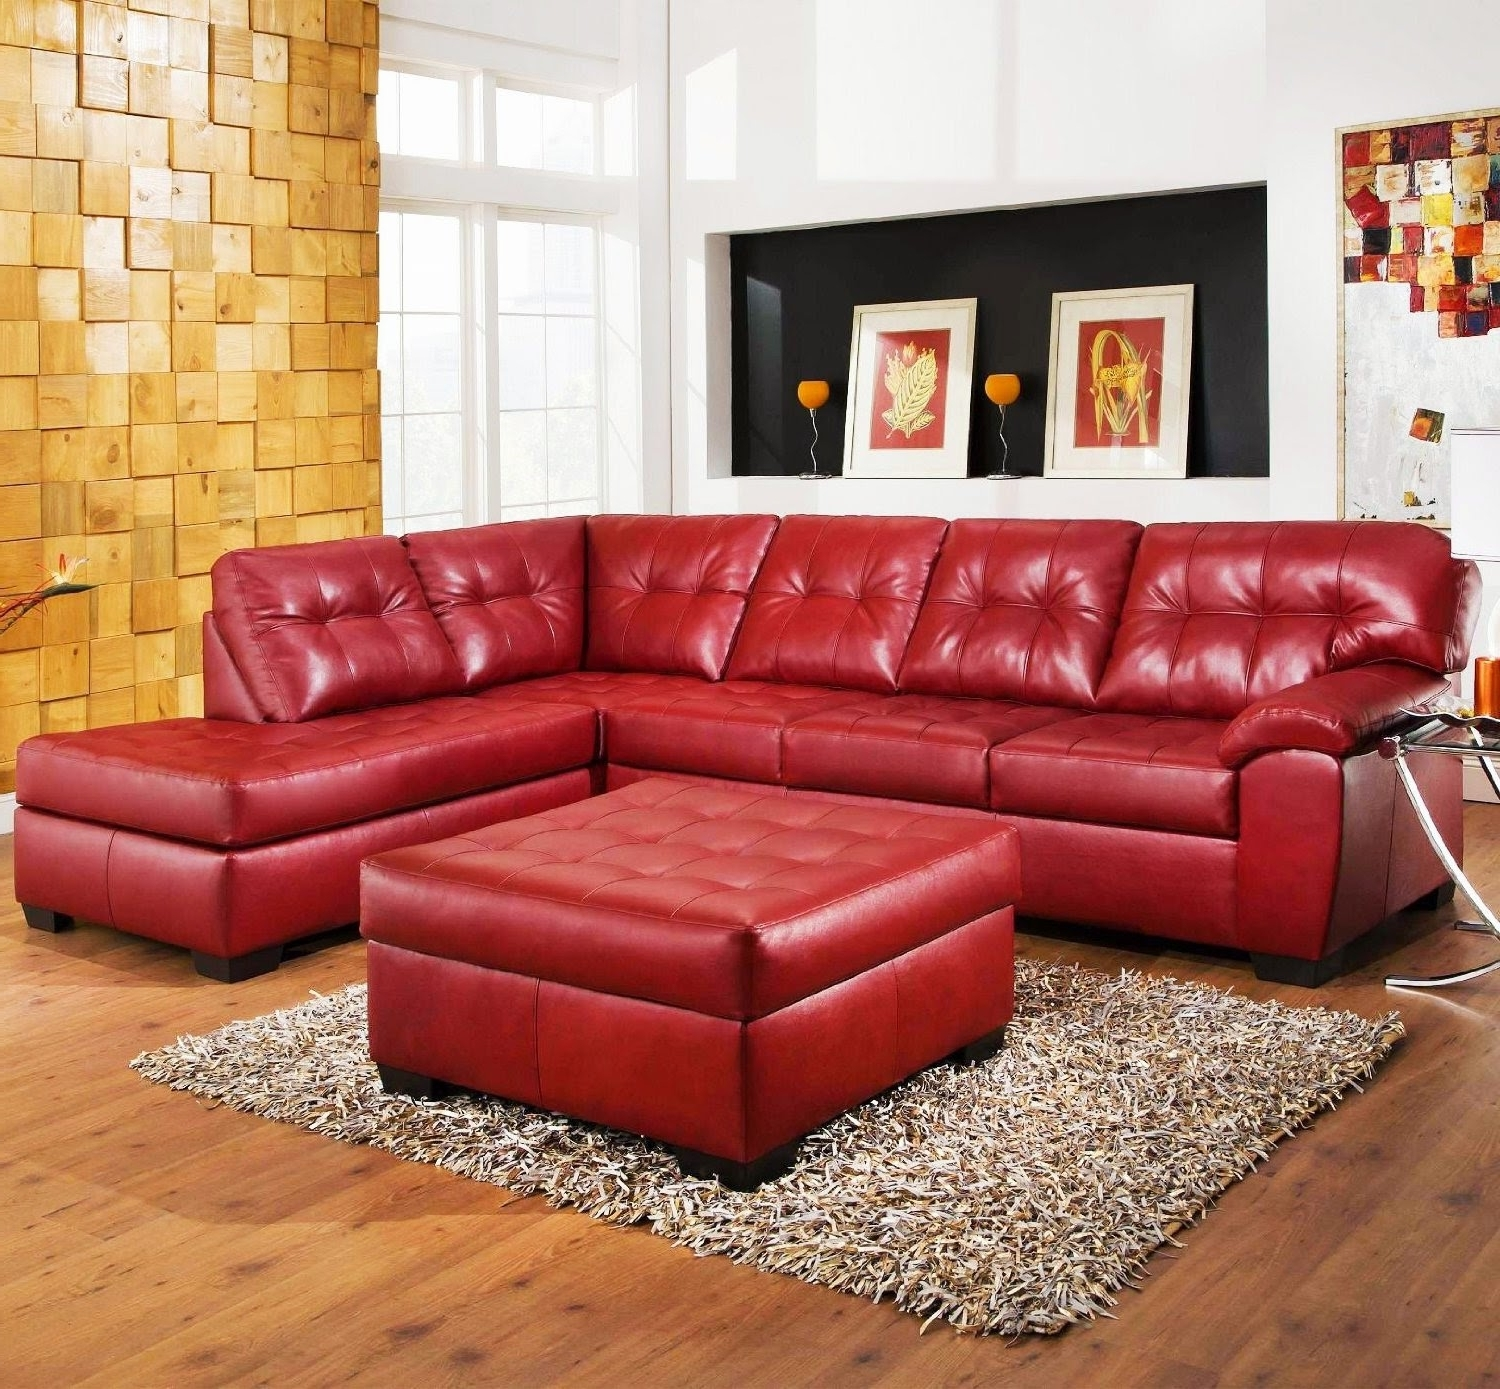 Beautiful Red Leather Sectional Sofa With Chaise Photos With Regard To Well Liked Red Sectional Sofas With Chaise (View 3 of 15)